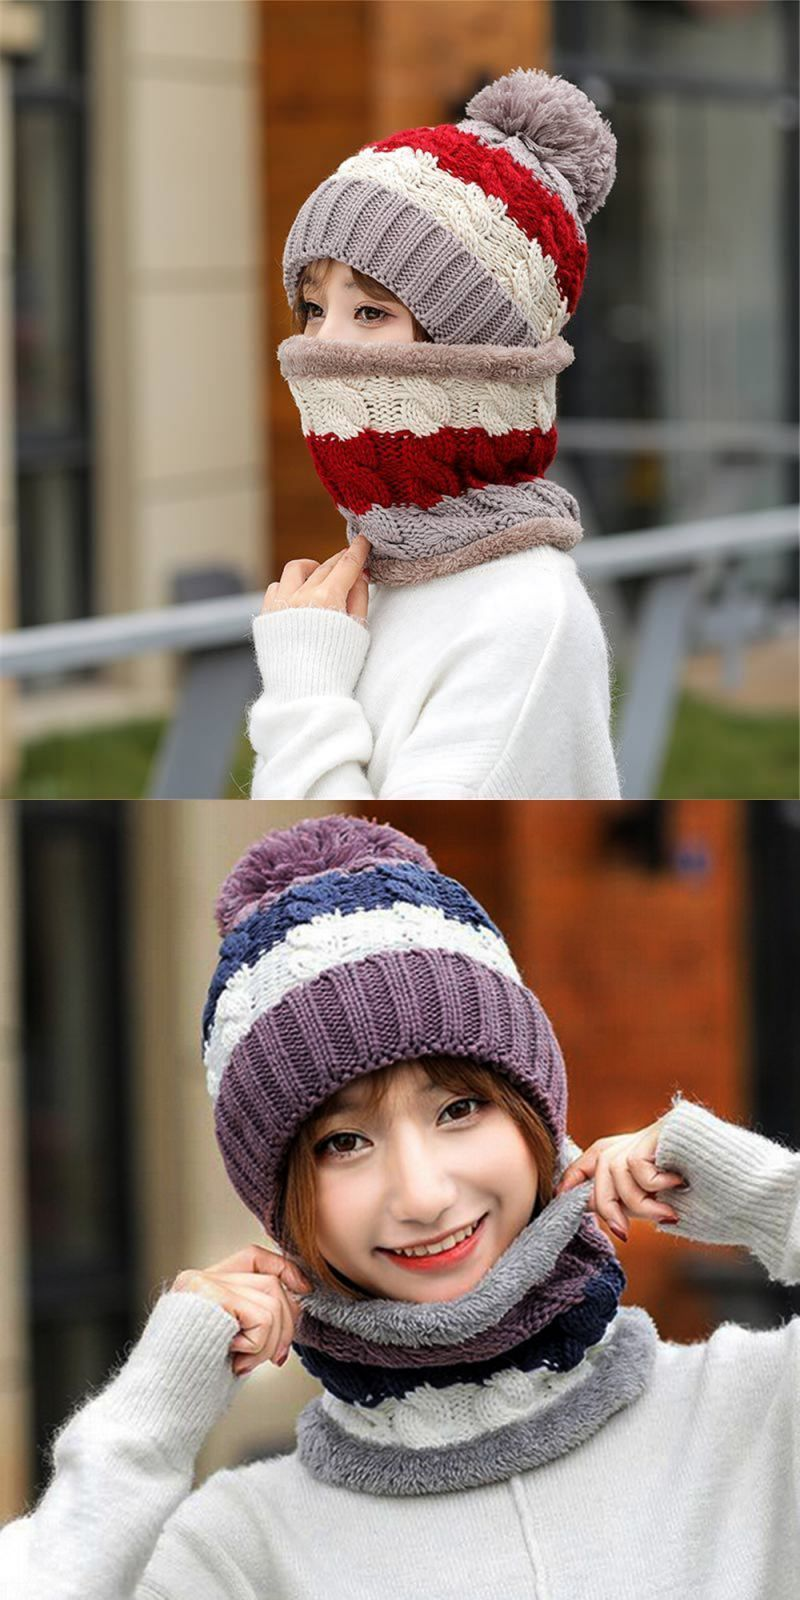 a003b2491f12c Womens hat bib warm ear velvet thicken fluff ball crochet winter hairball caps  fashion caps for women hats winter ladies  acrylic  adult  women  casual ...